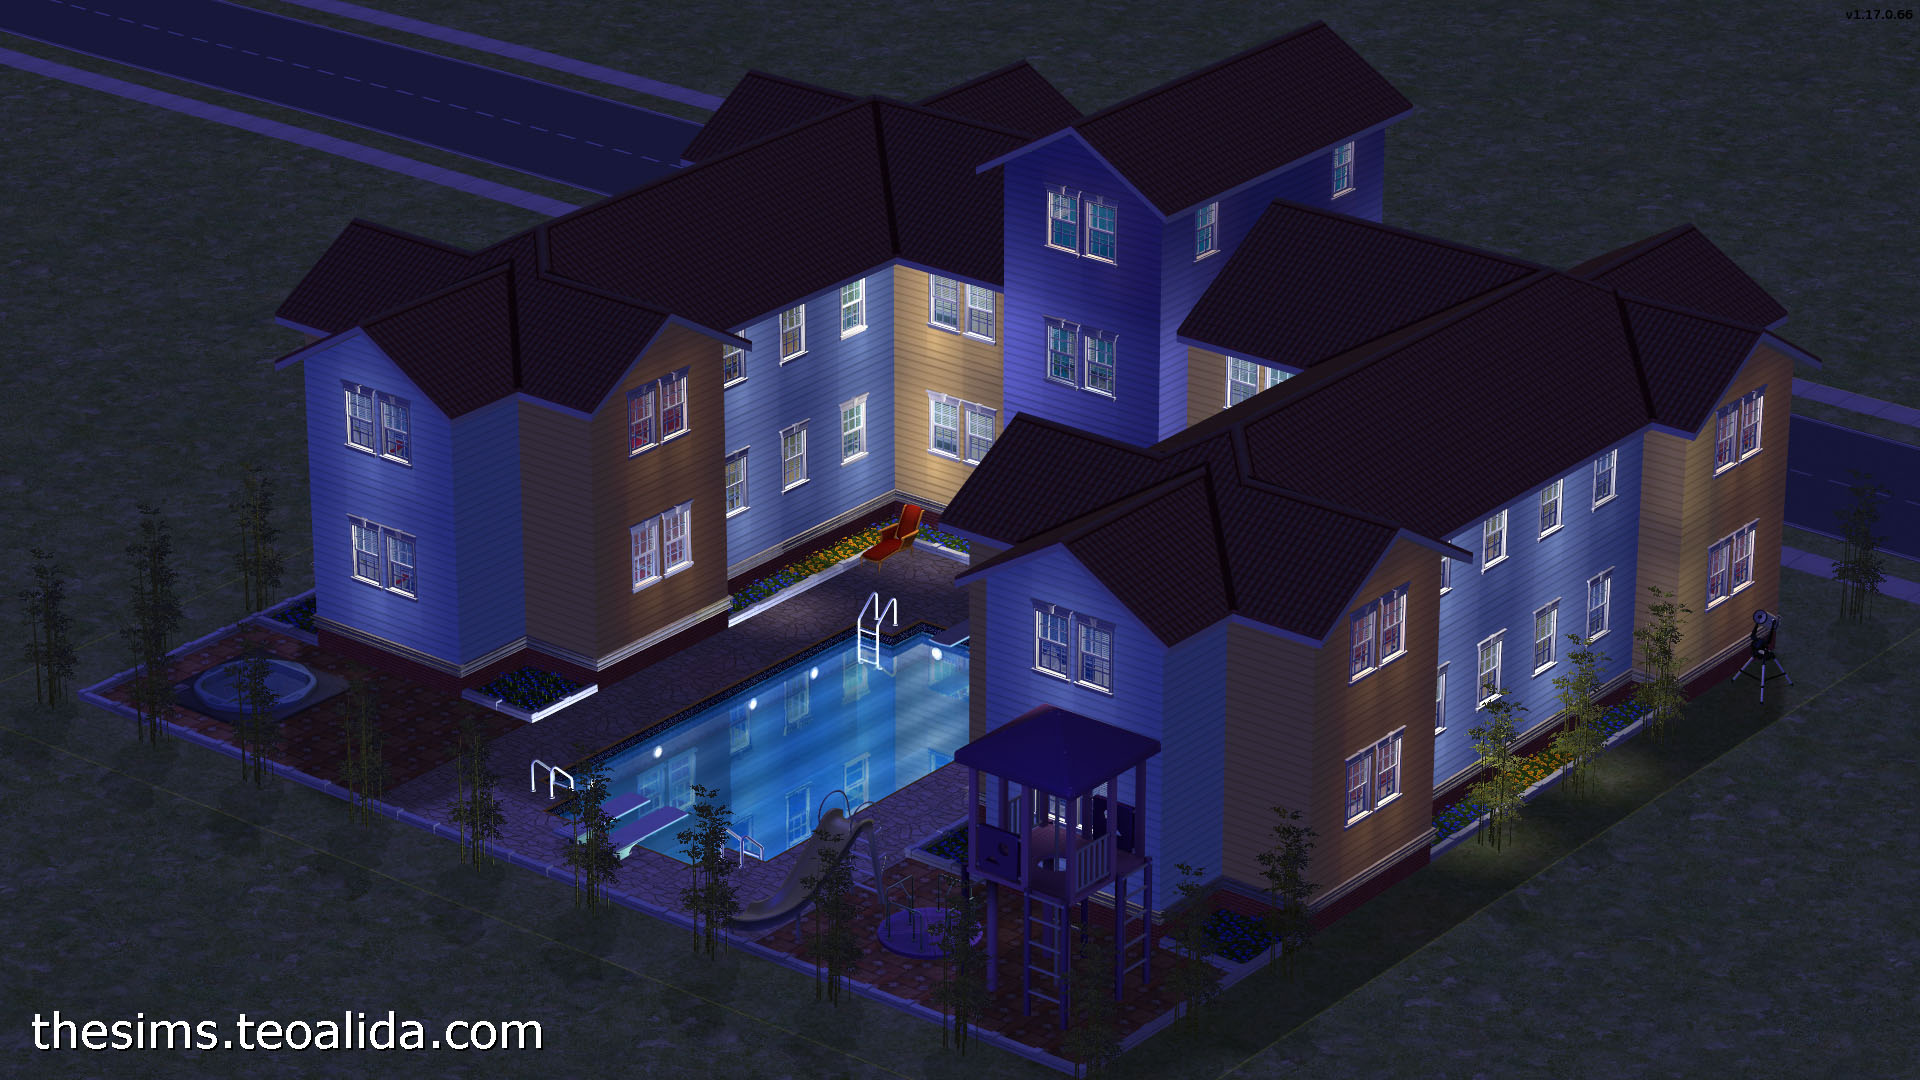 U-shaped apartment block for 4 families   The Sims fan page on shaped kitchen, u-shaped courtyard home plans, shaped building, shaped tile, shaped swimming pools, pie-shaped lot home plans,